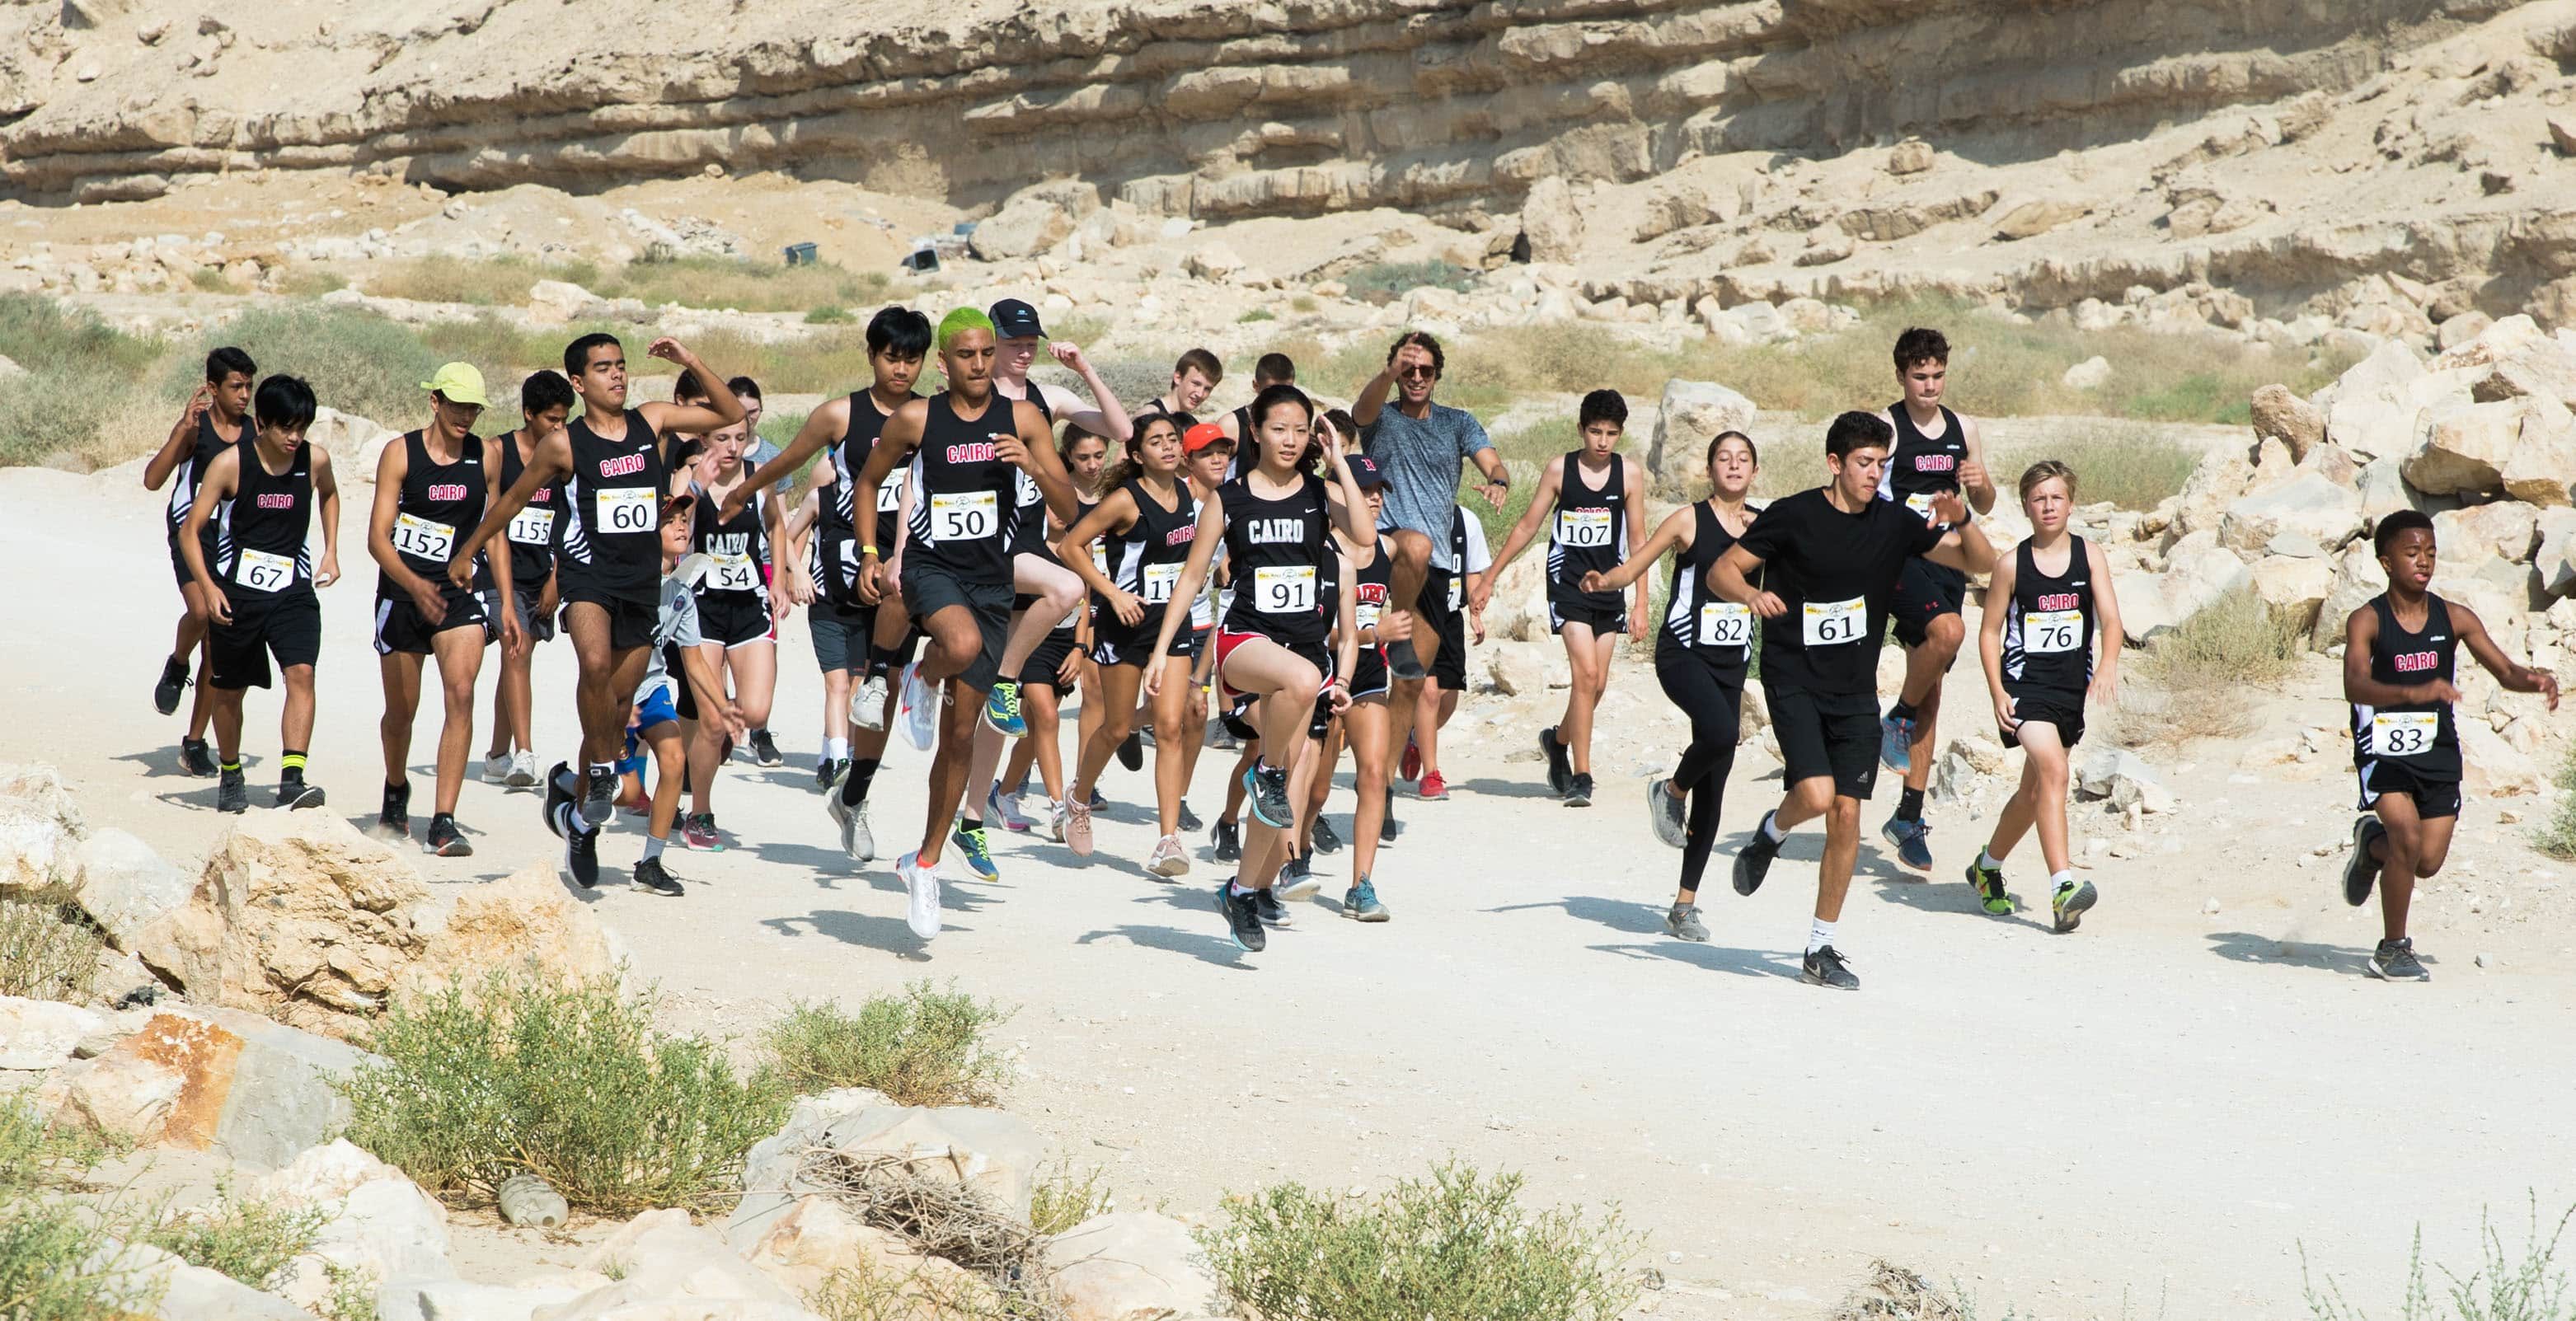 Athletics_2019-07